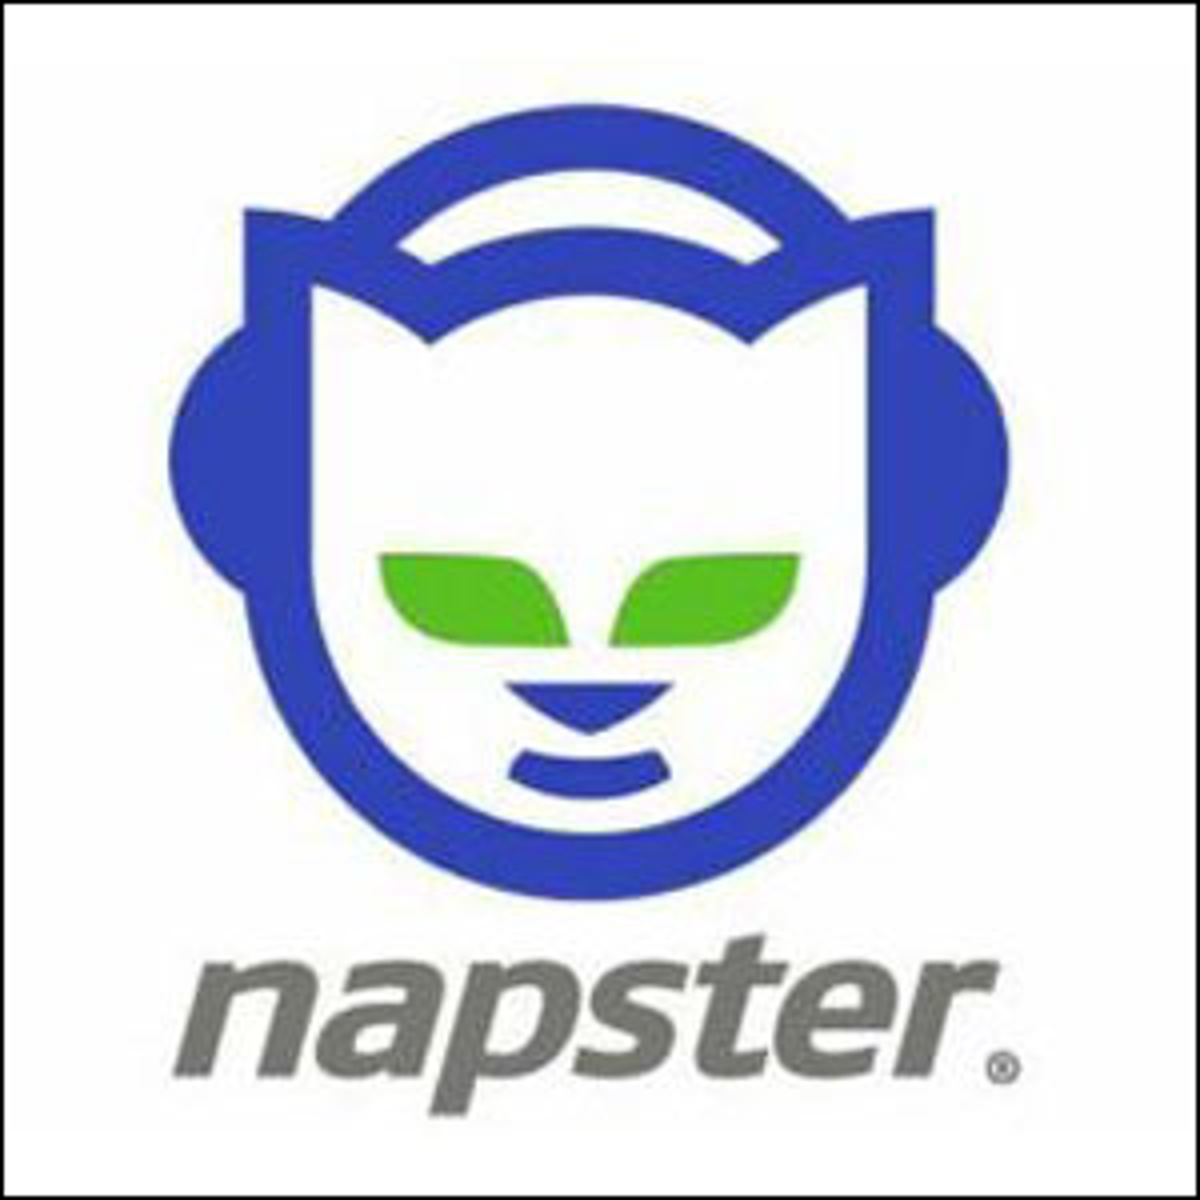 The logo for Napster.